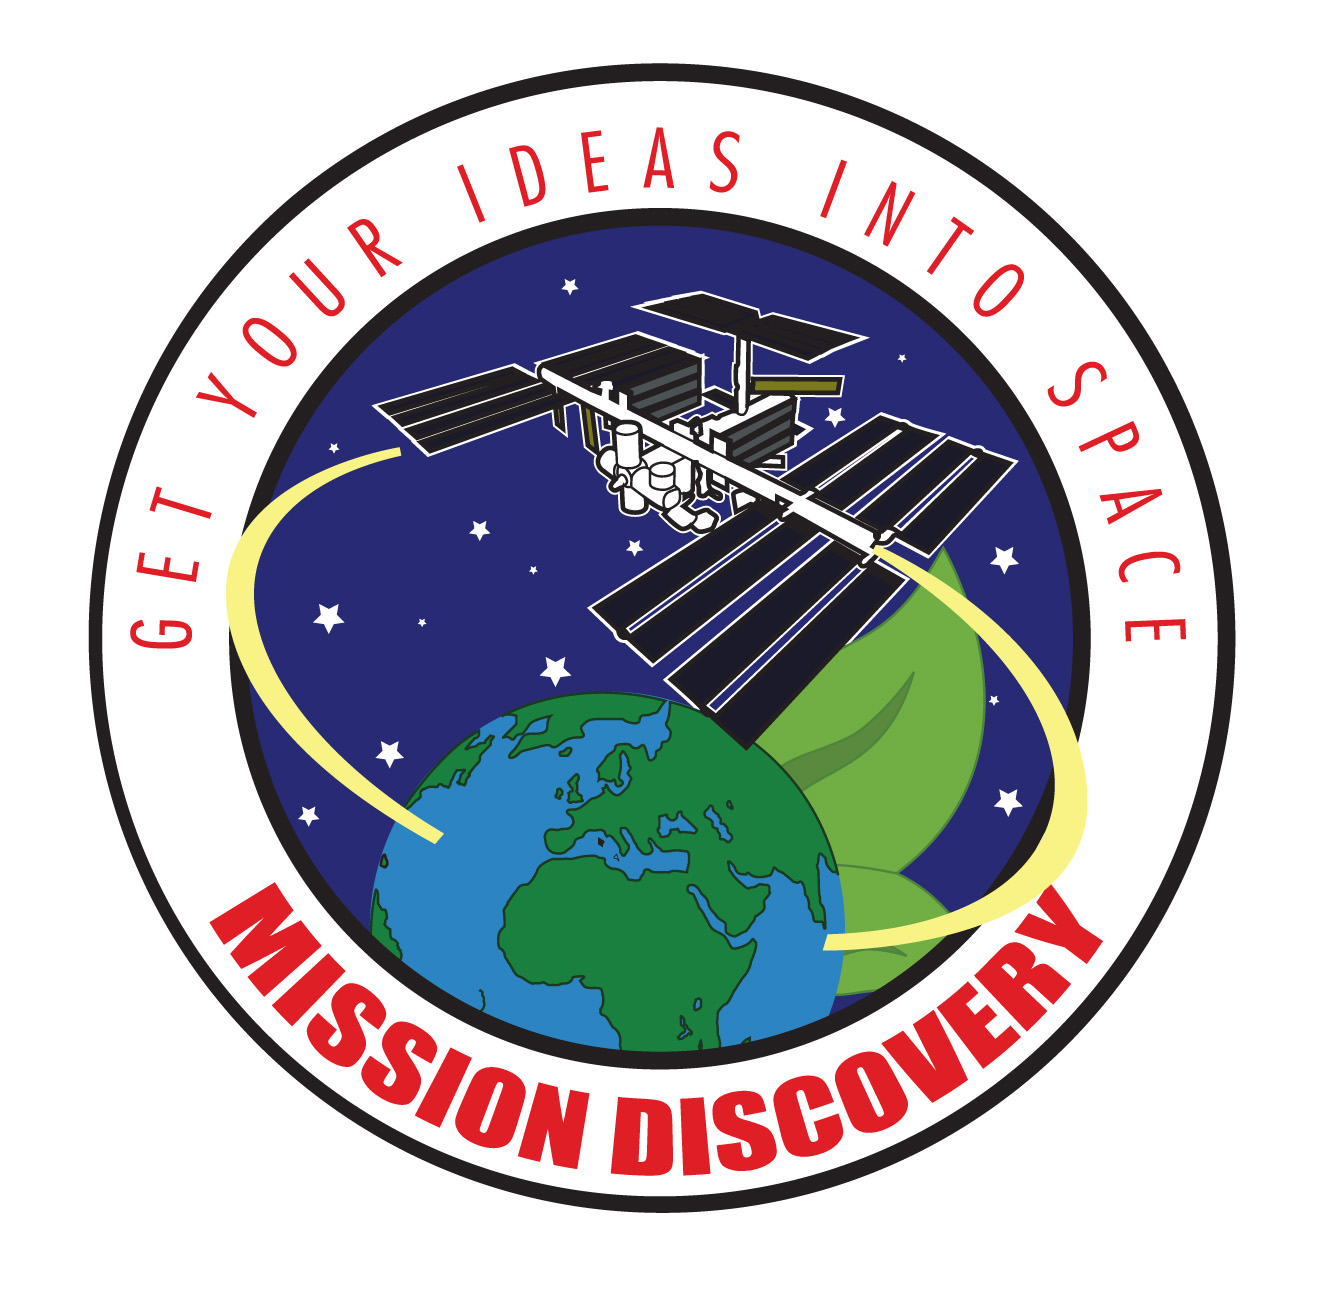 nasa discovery missions - photo #30